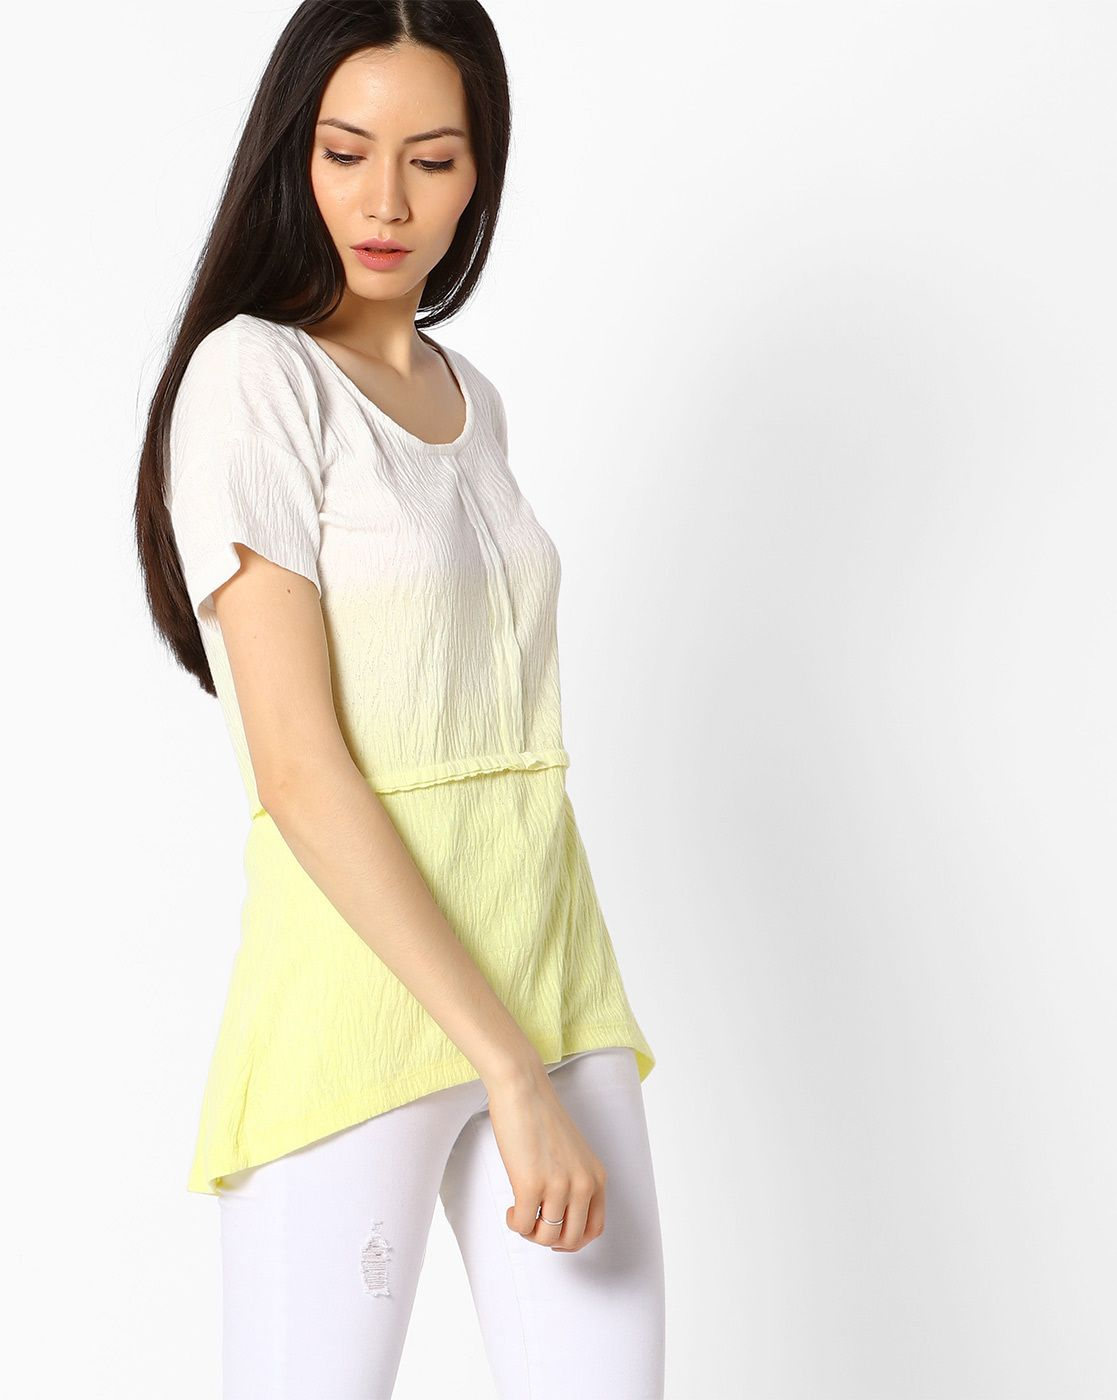 3e2adcd38c412 Shop latest Cotton & Silk tops for women. Styles - Party wear, cotton long